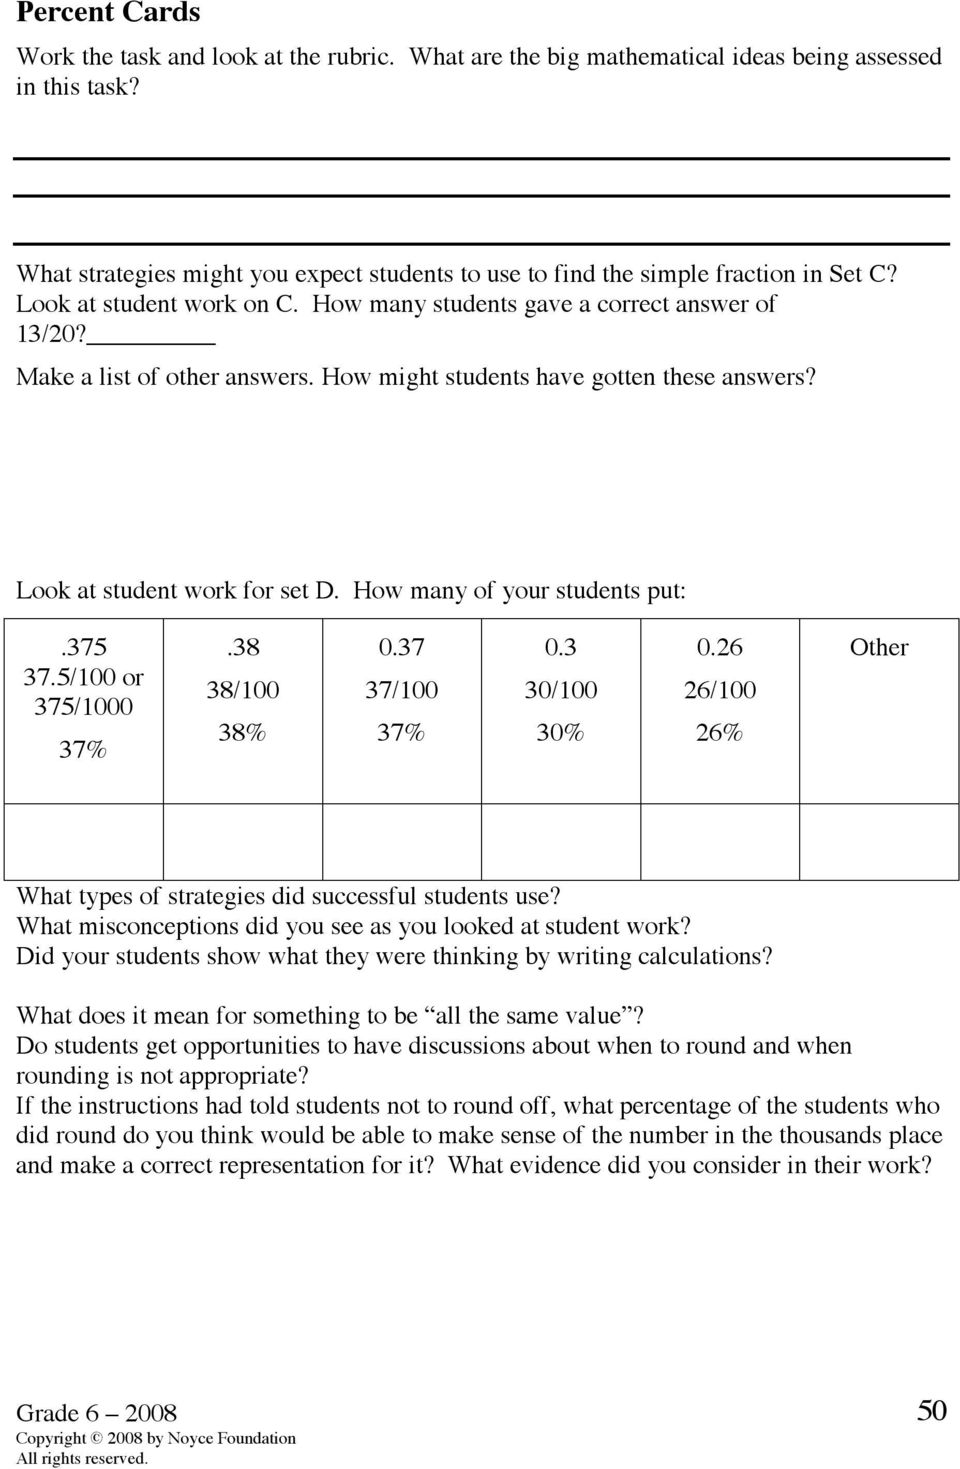 How might students have gotten these answers? Look at student work for set D. How many of your students put:.375 37.5/100 or 375/1000 37%.38 38/100 38% 0.37 37/100 37% 0.3 30/100 30% 0.